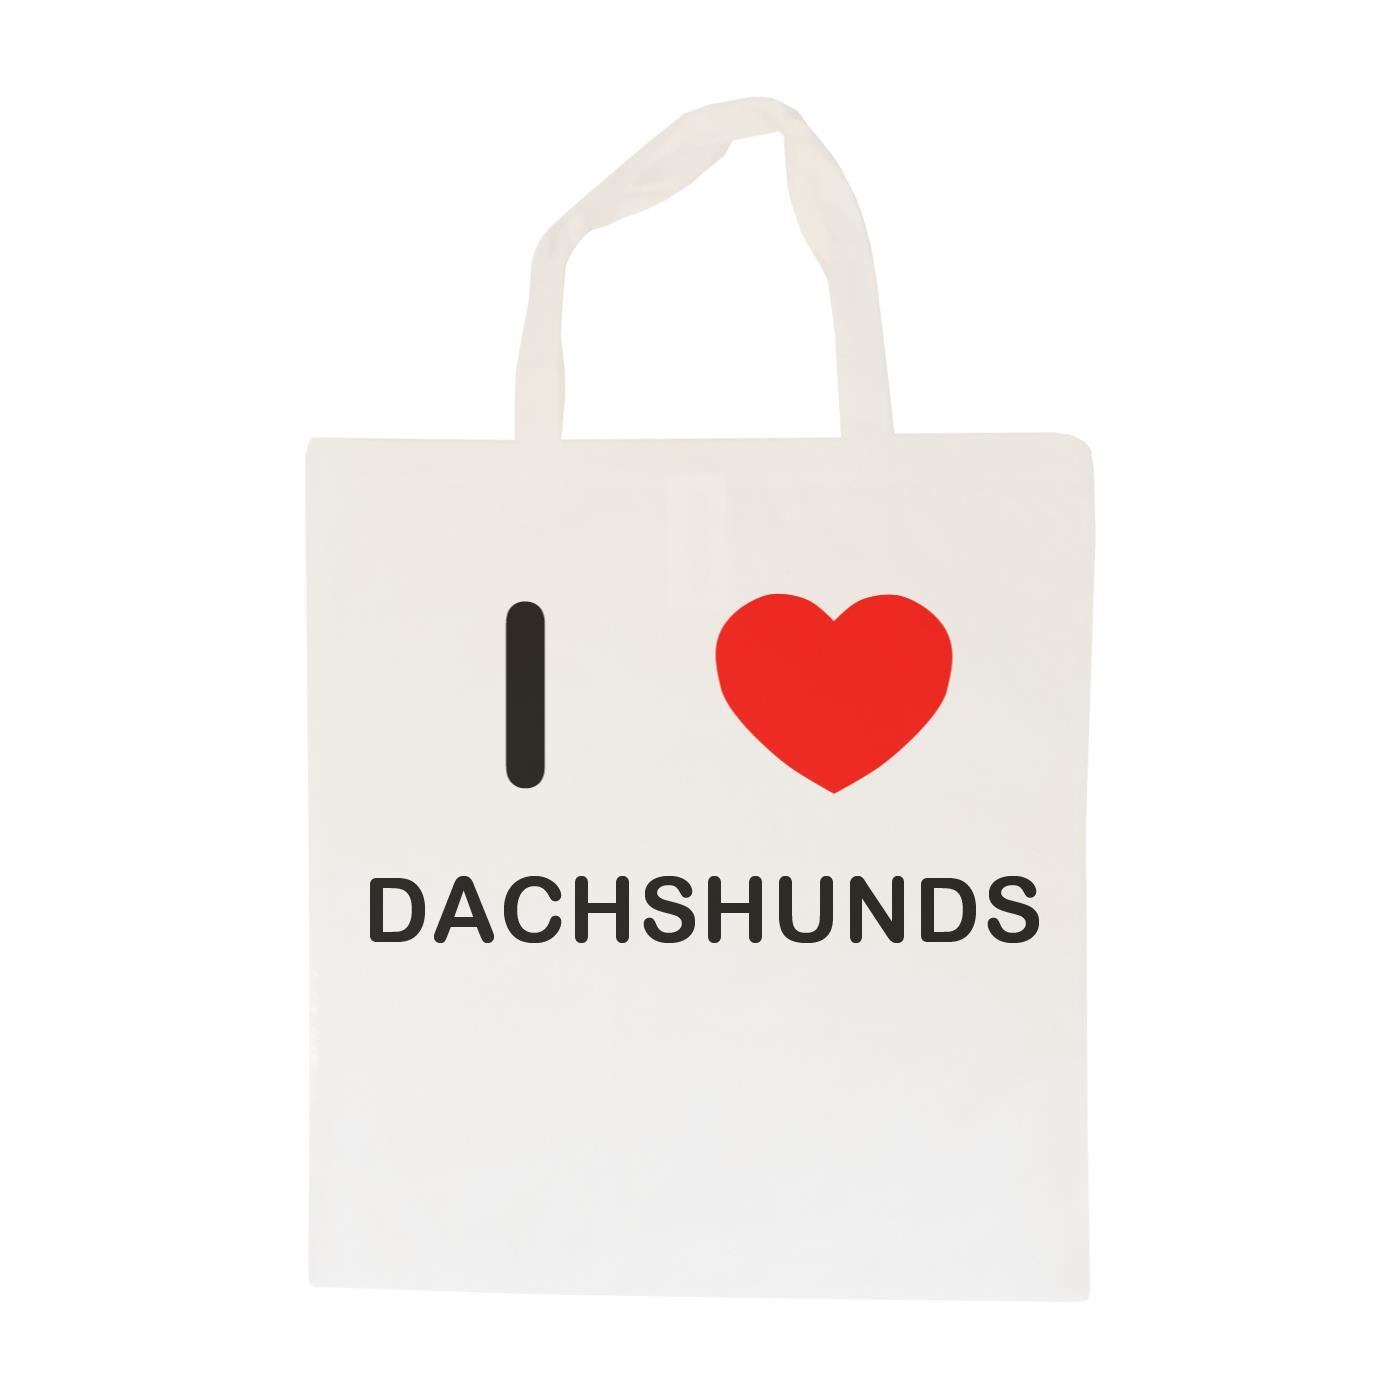 I Love Dachshunds - Cotton Bag | Size choice Tote, Shopper or Sling